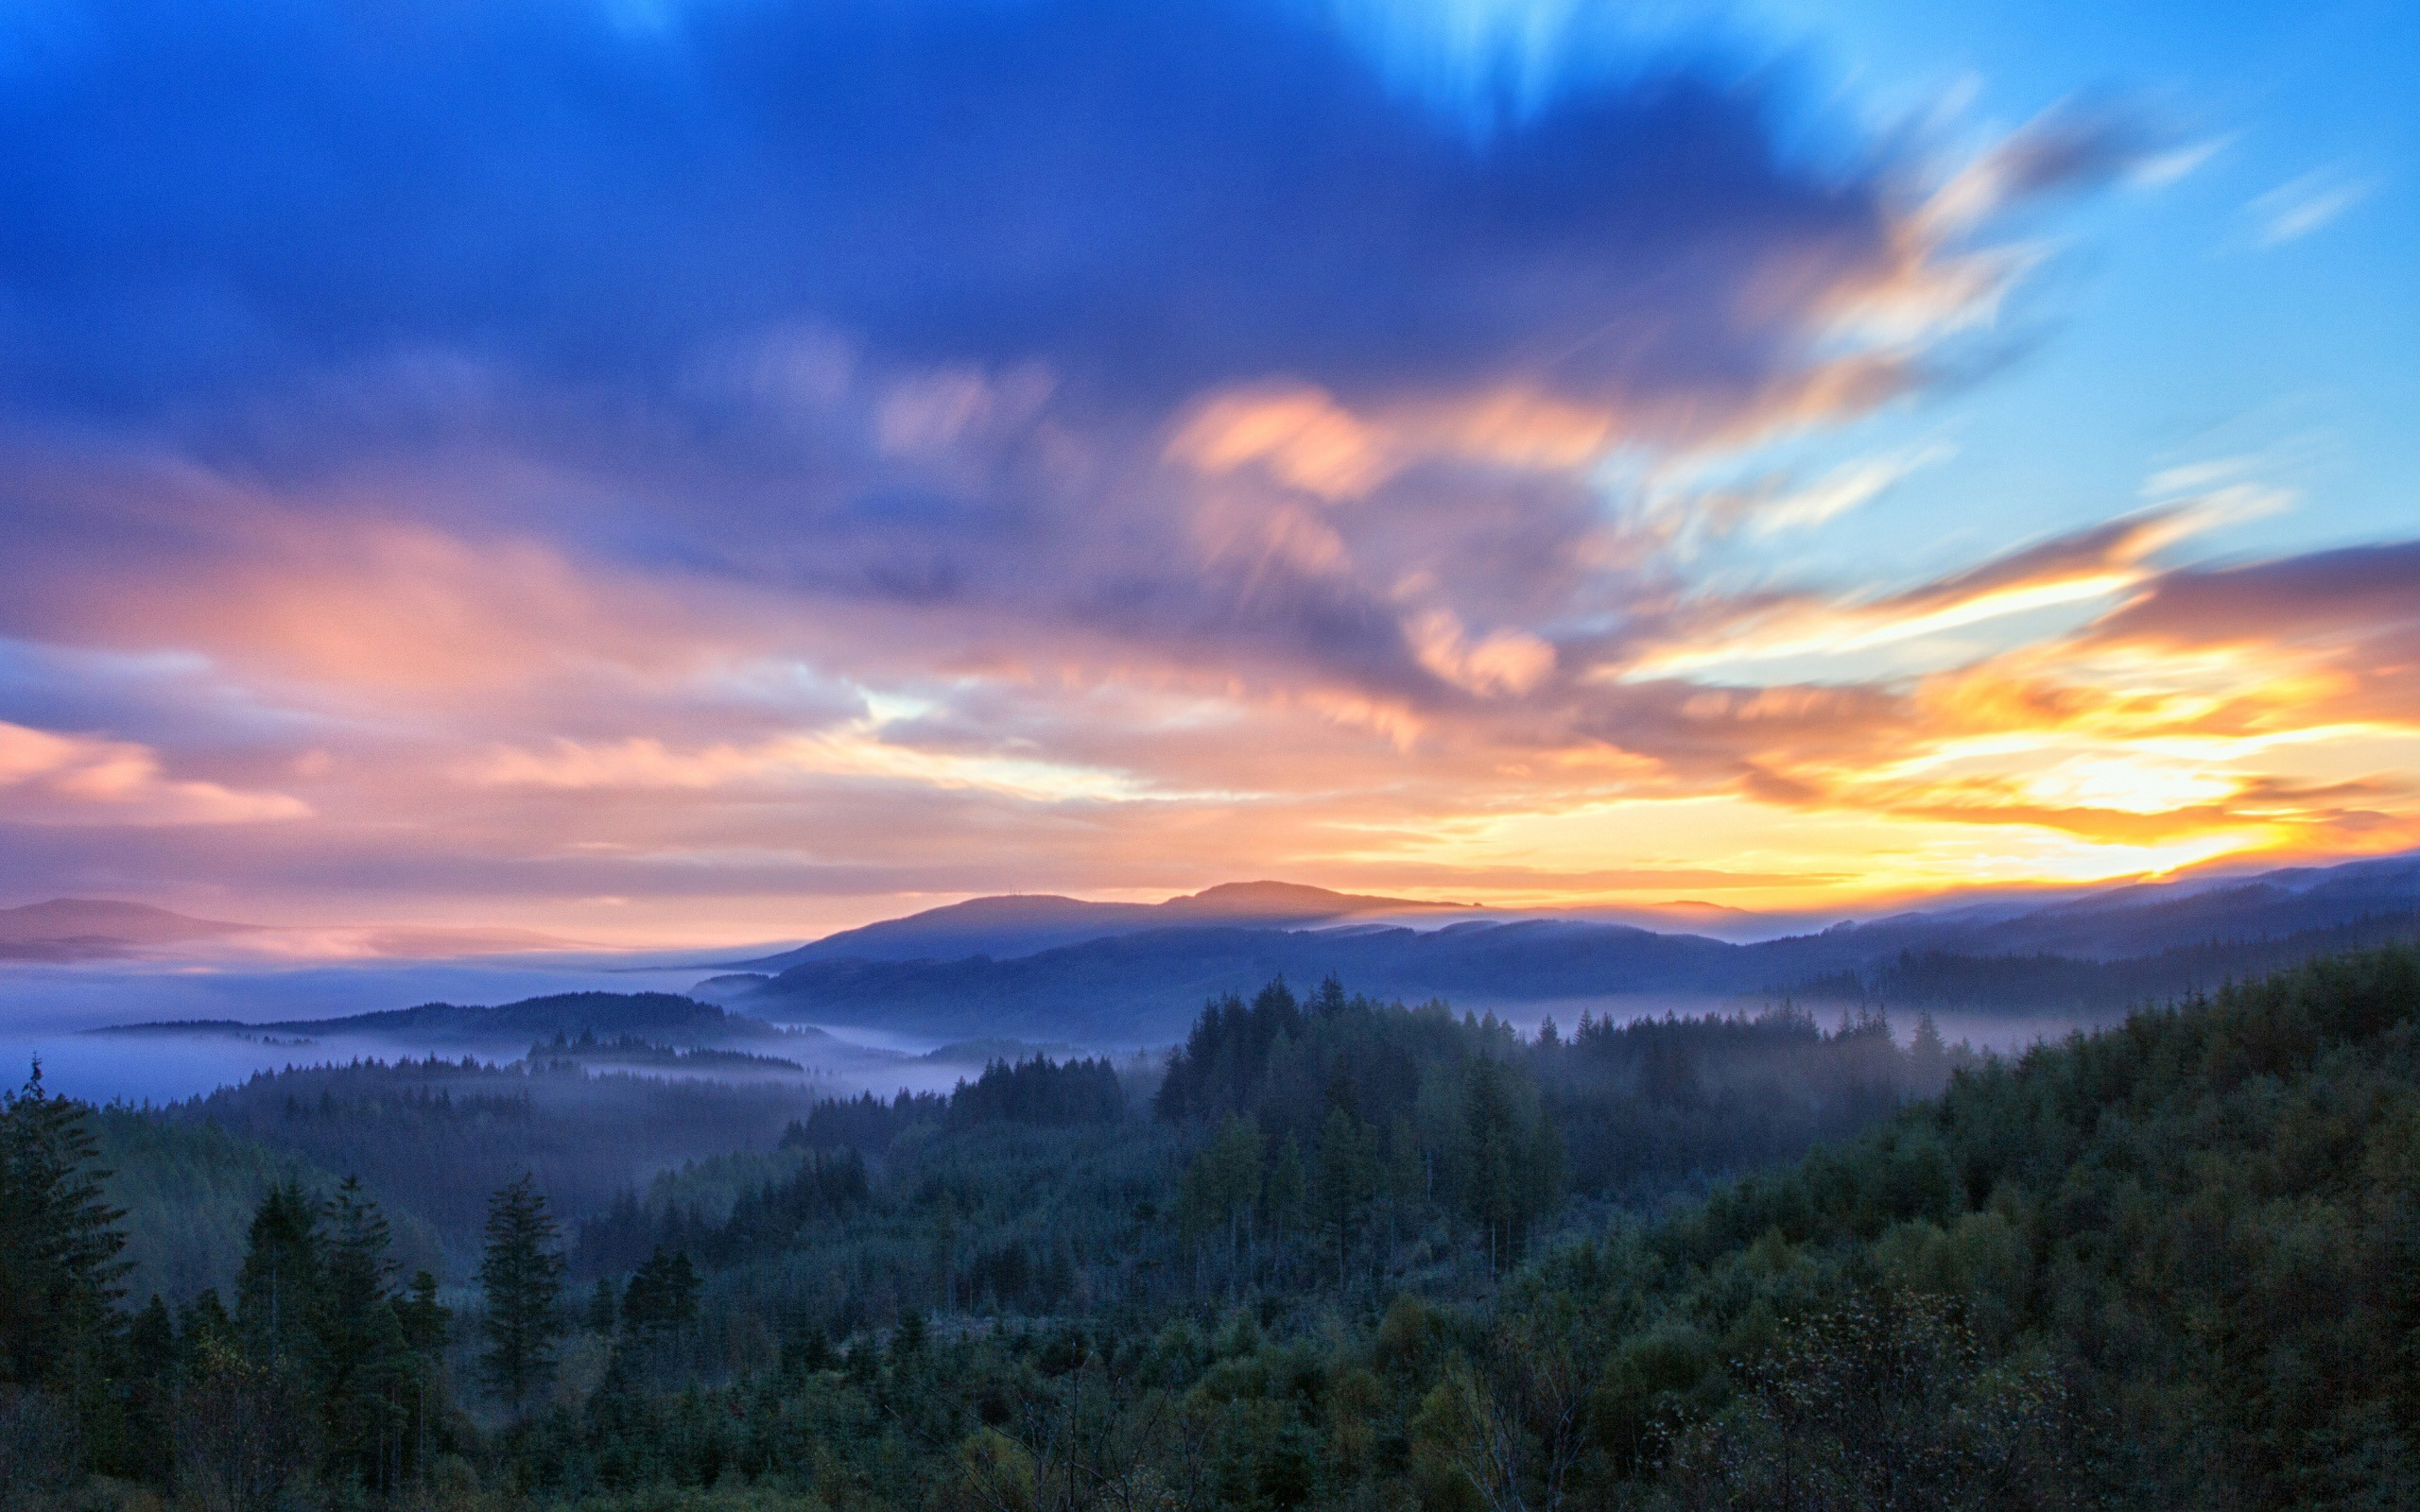 Forest sunrise clouds-Beautiful landscape wallpaper - 2560x1600 wallpaper download